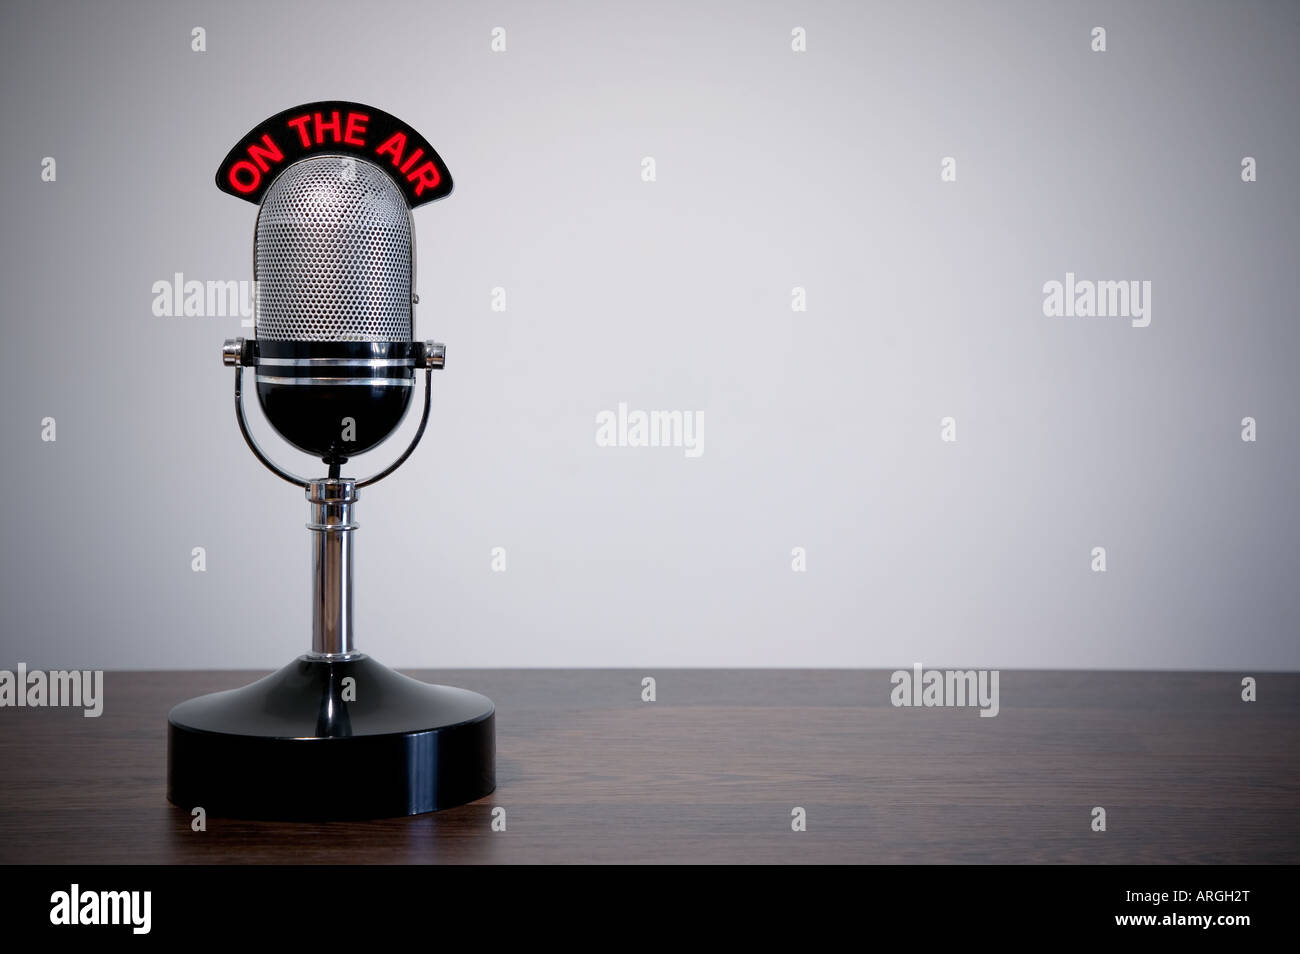 Retro microphone with an On the Air illuminated sign on a desk vignetted background - Stock Image